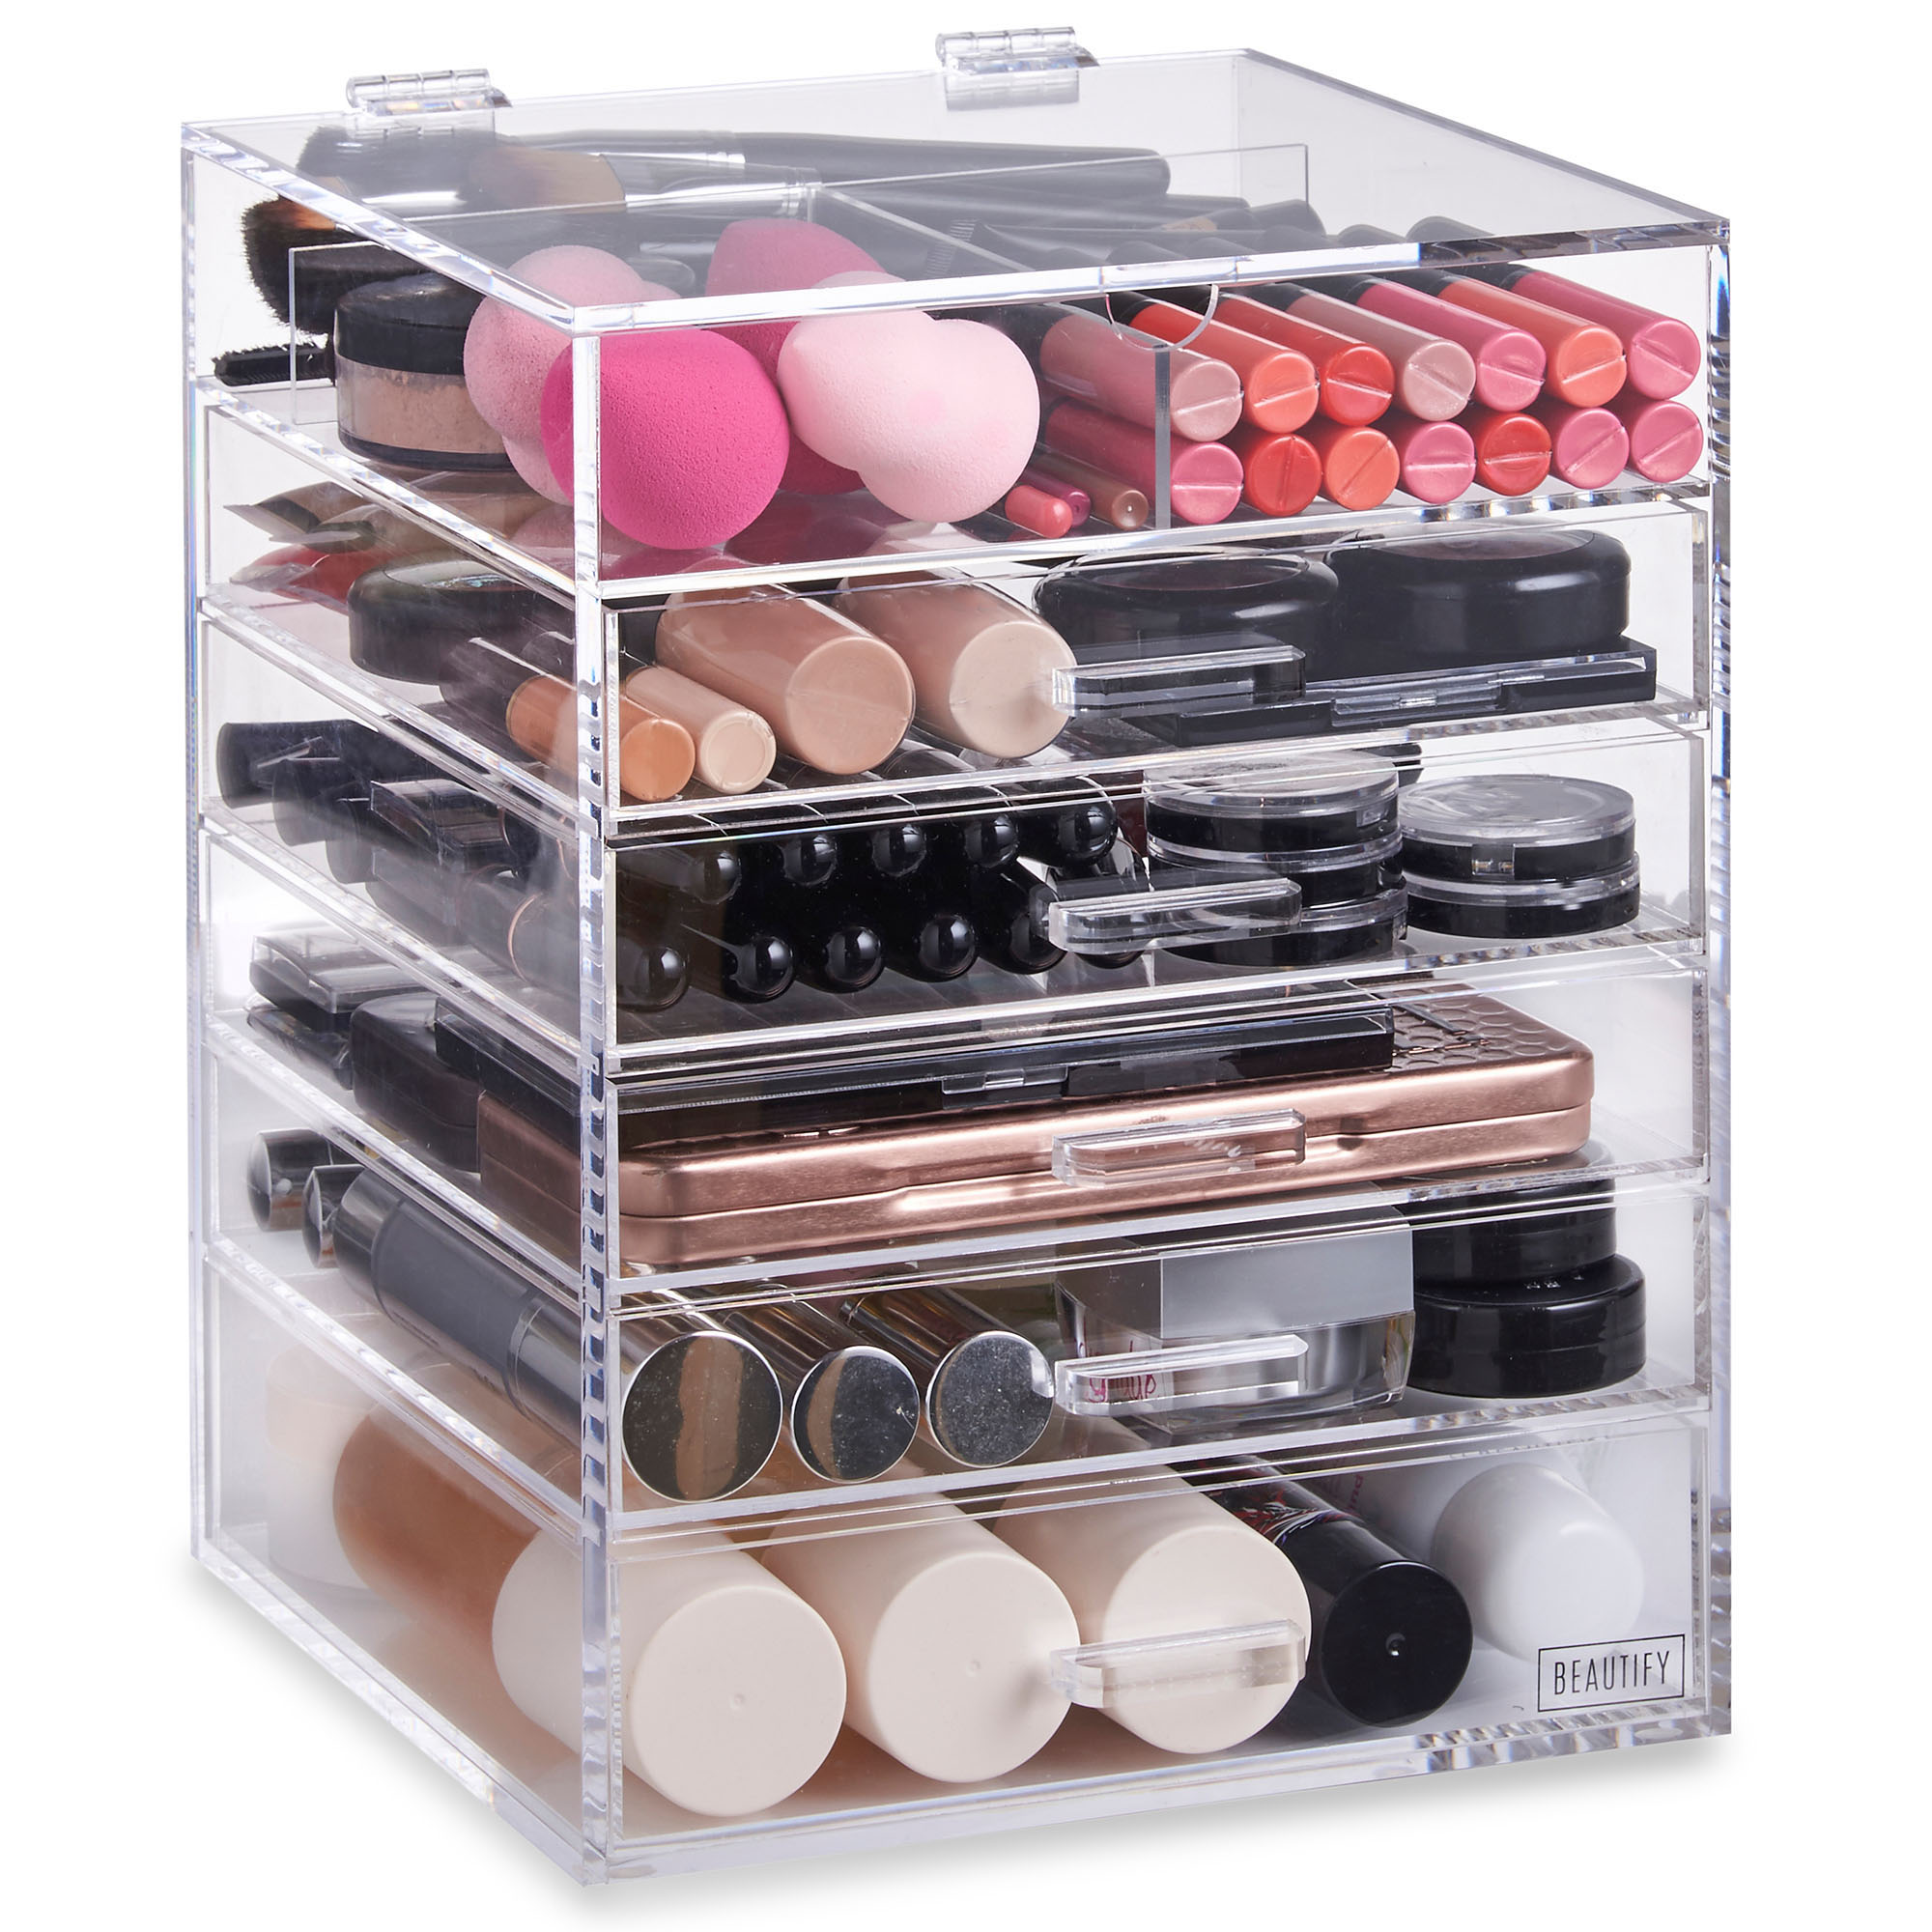 beautify acrylic makeup organiser 6 tier clear cosmetic. Black Bedroom Furniture Sets. Home Design Ideas